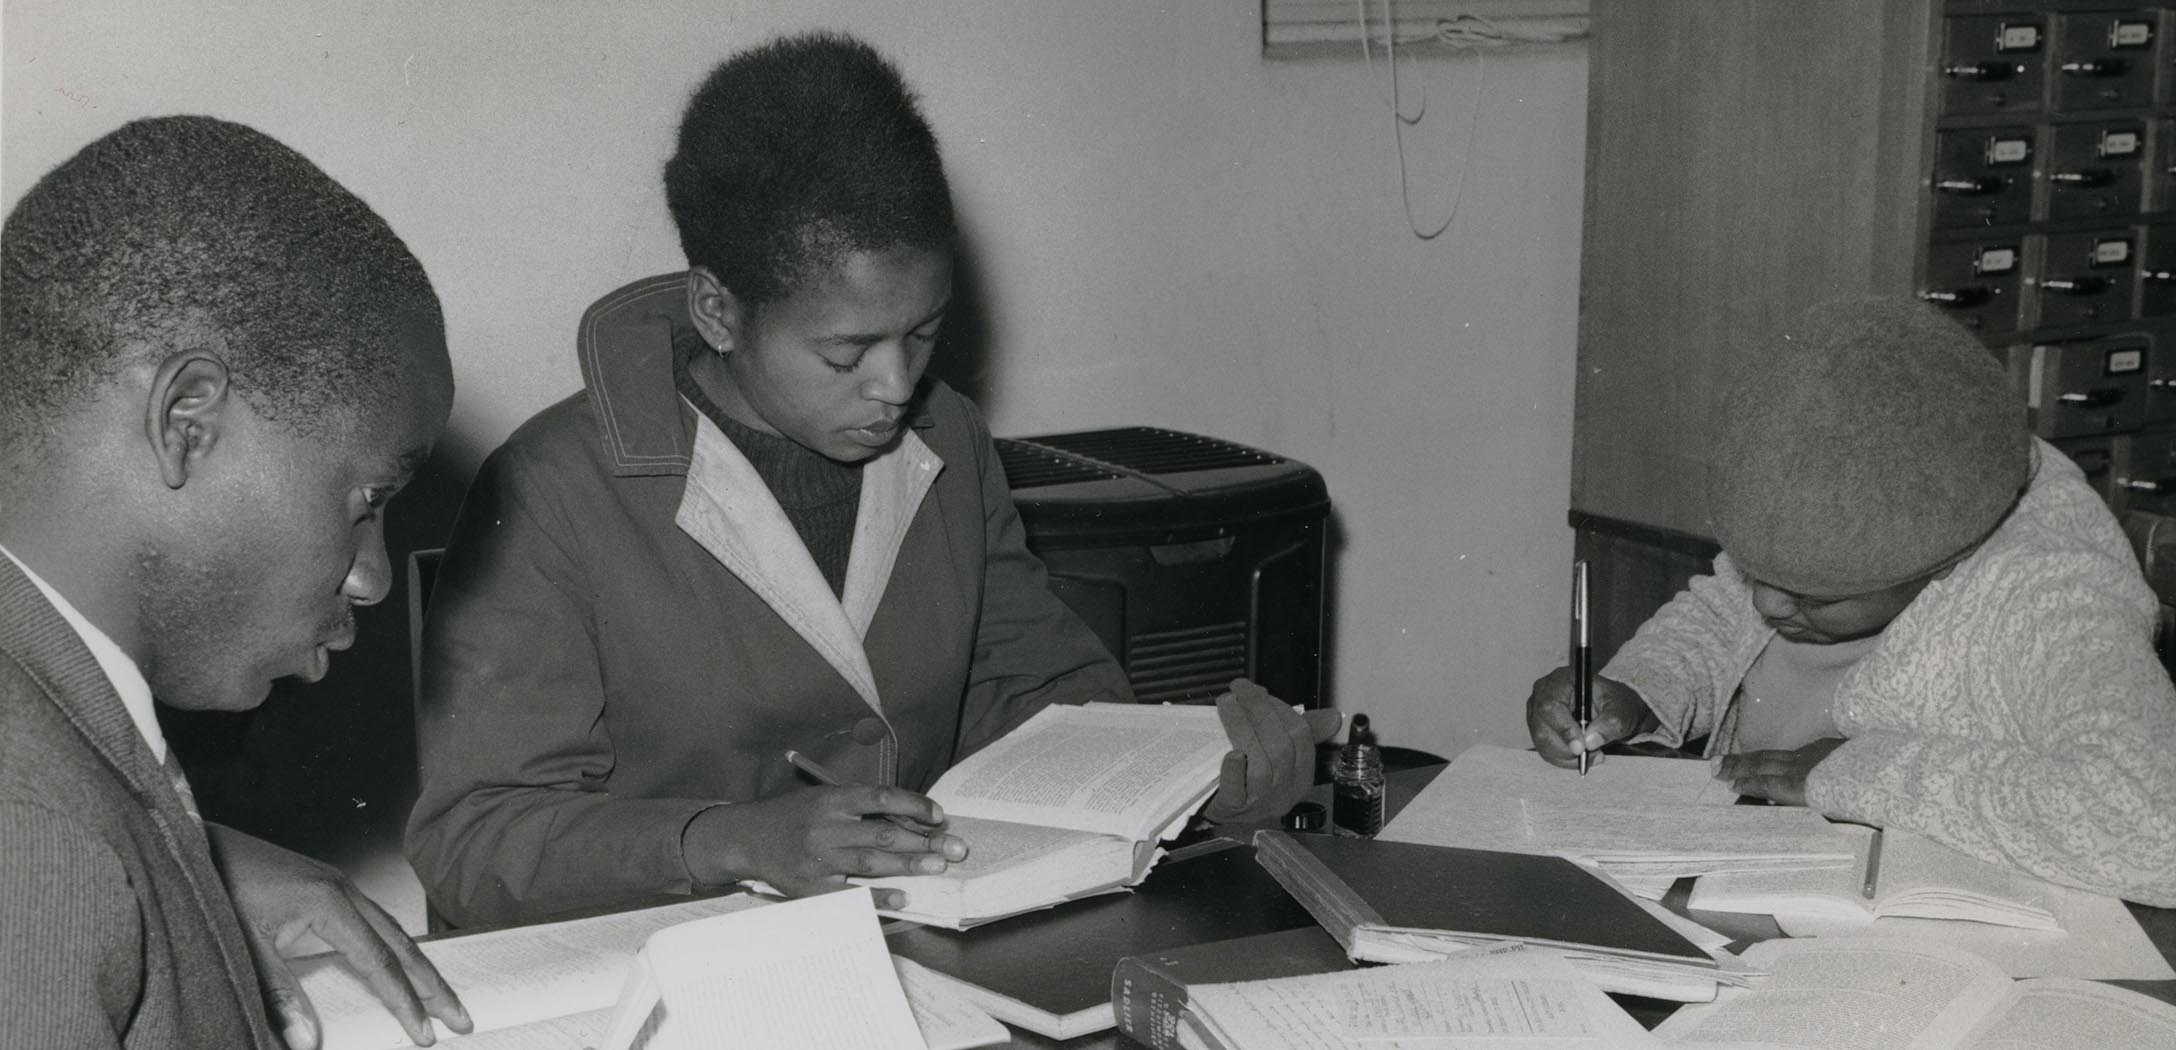 Students studying in Lesotho, 1963